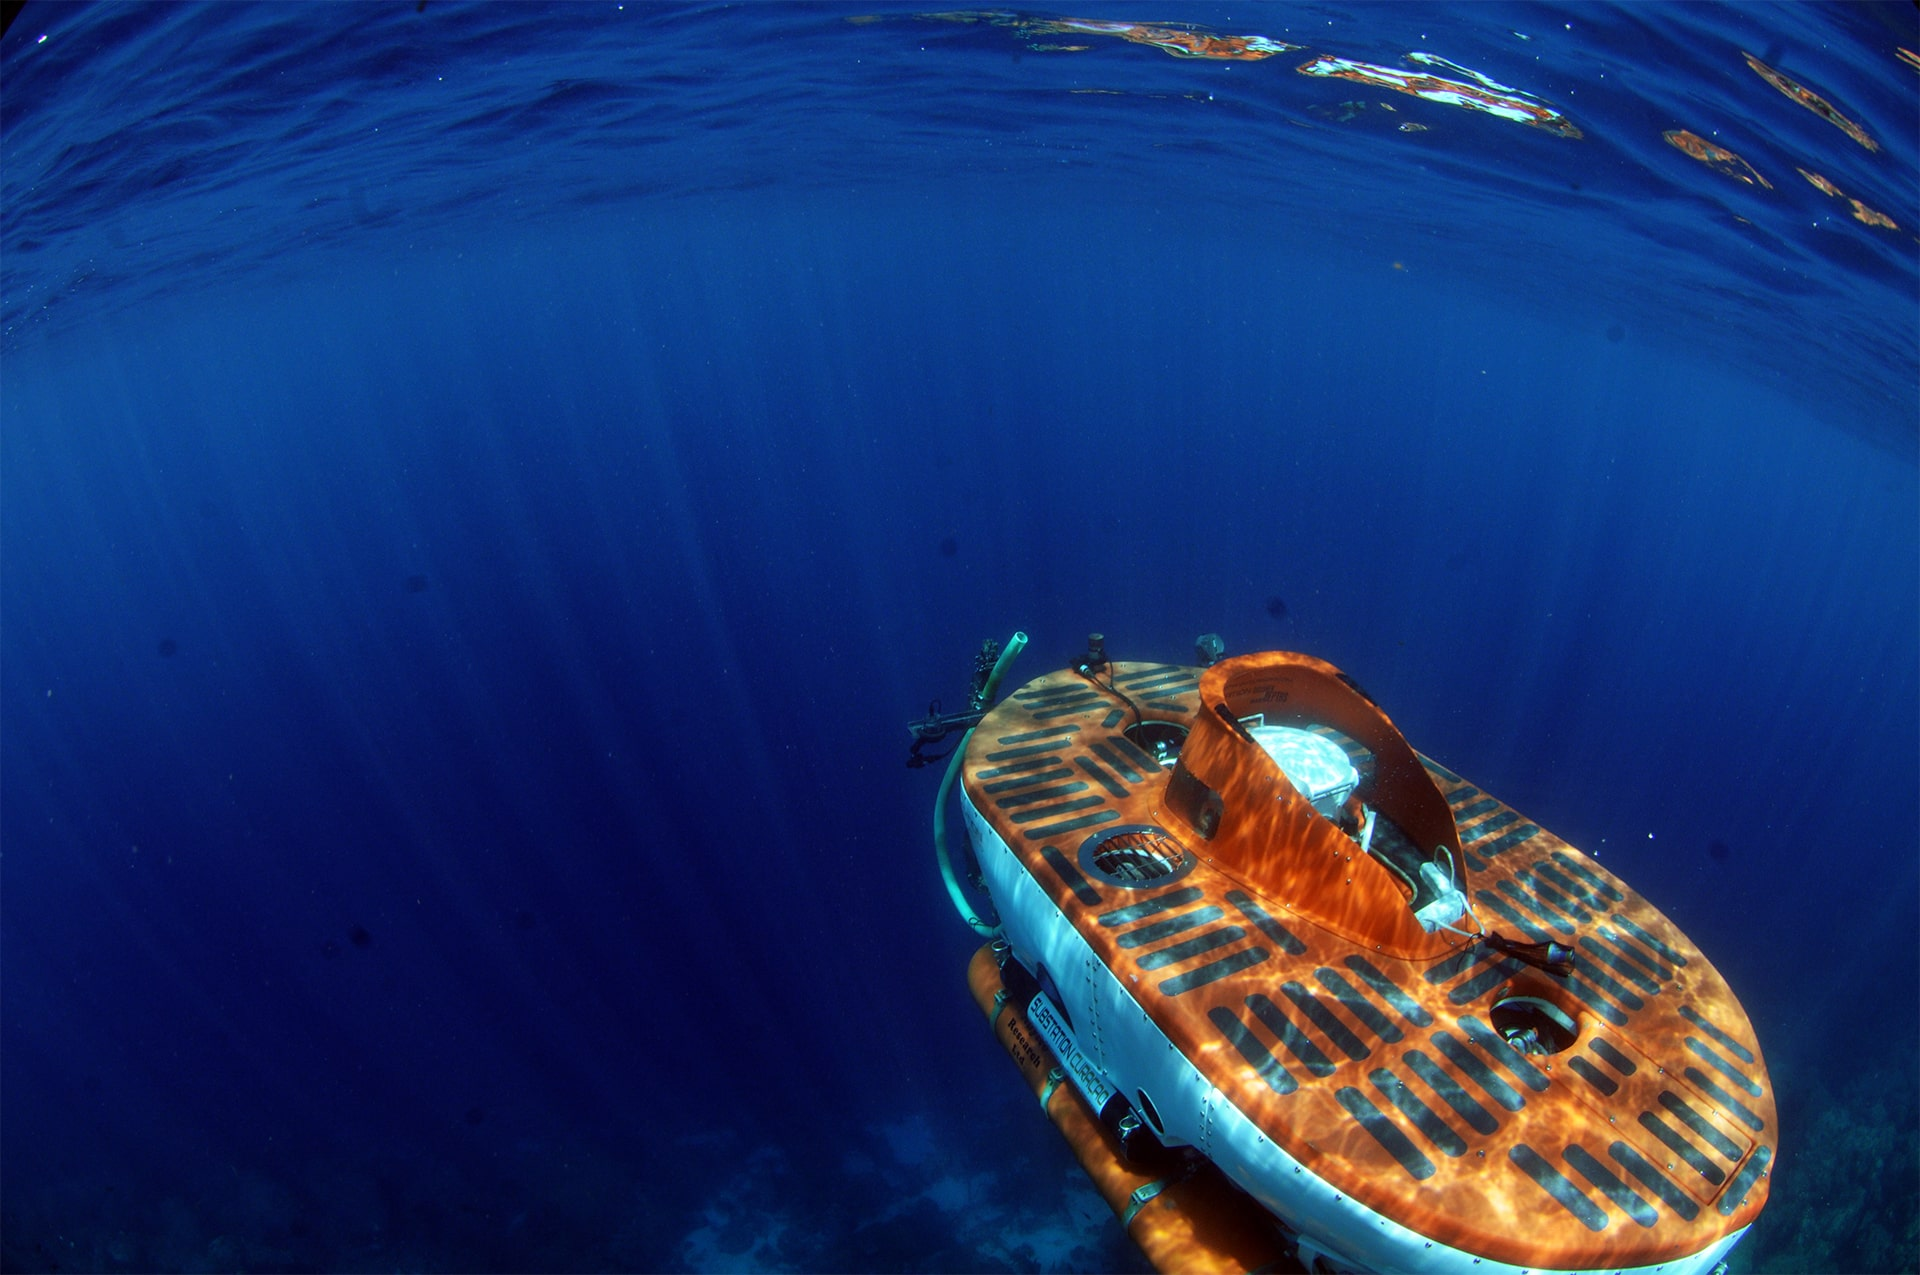 Submarine curasub, classified for 1000 feet capacity of 5 people with viewing windows in the deep sea of Curaçao.